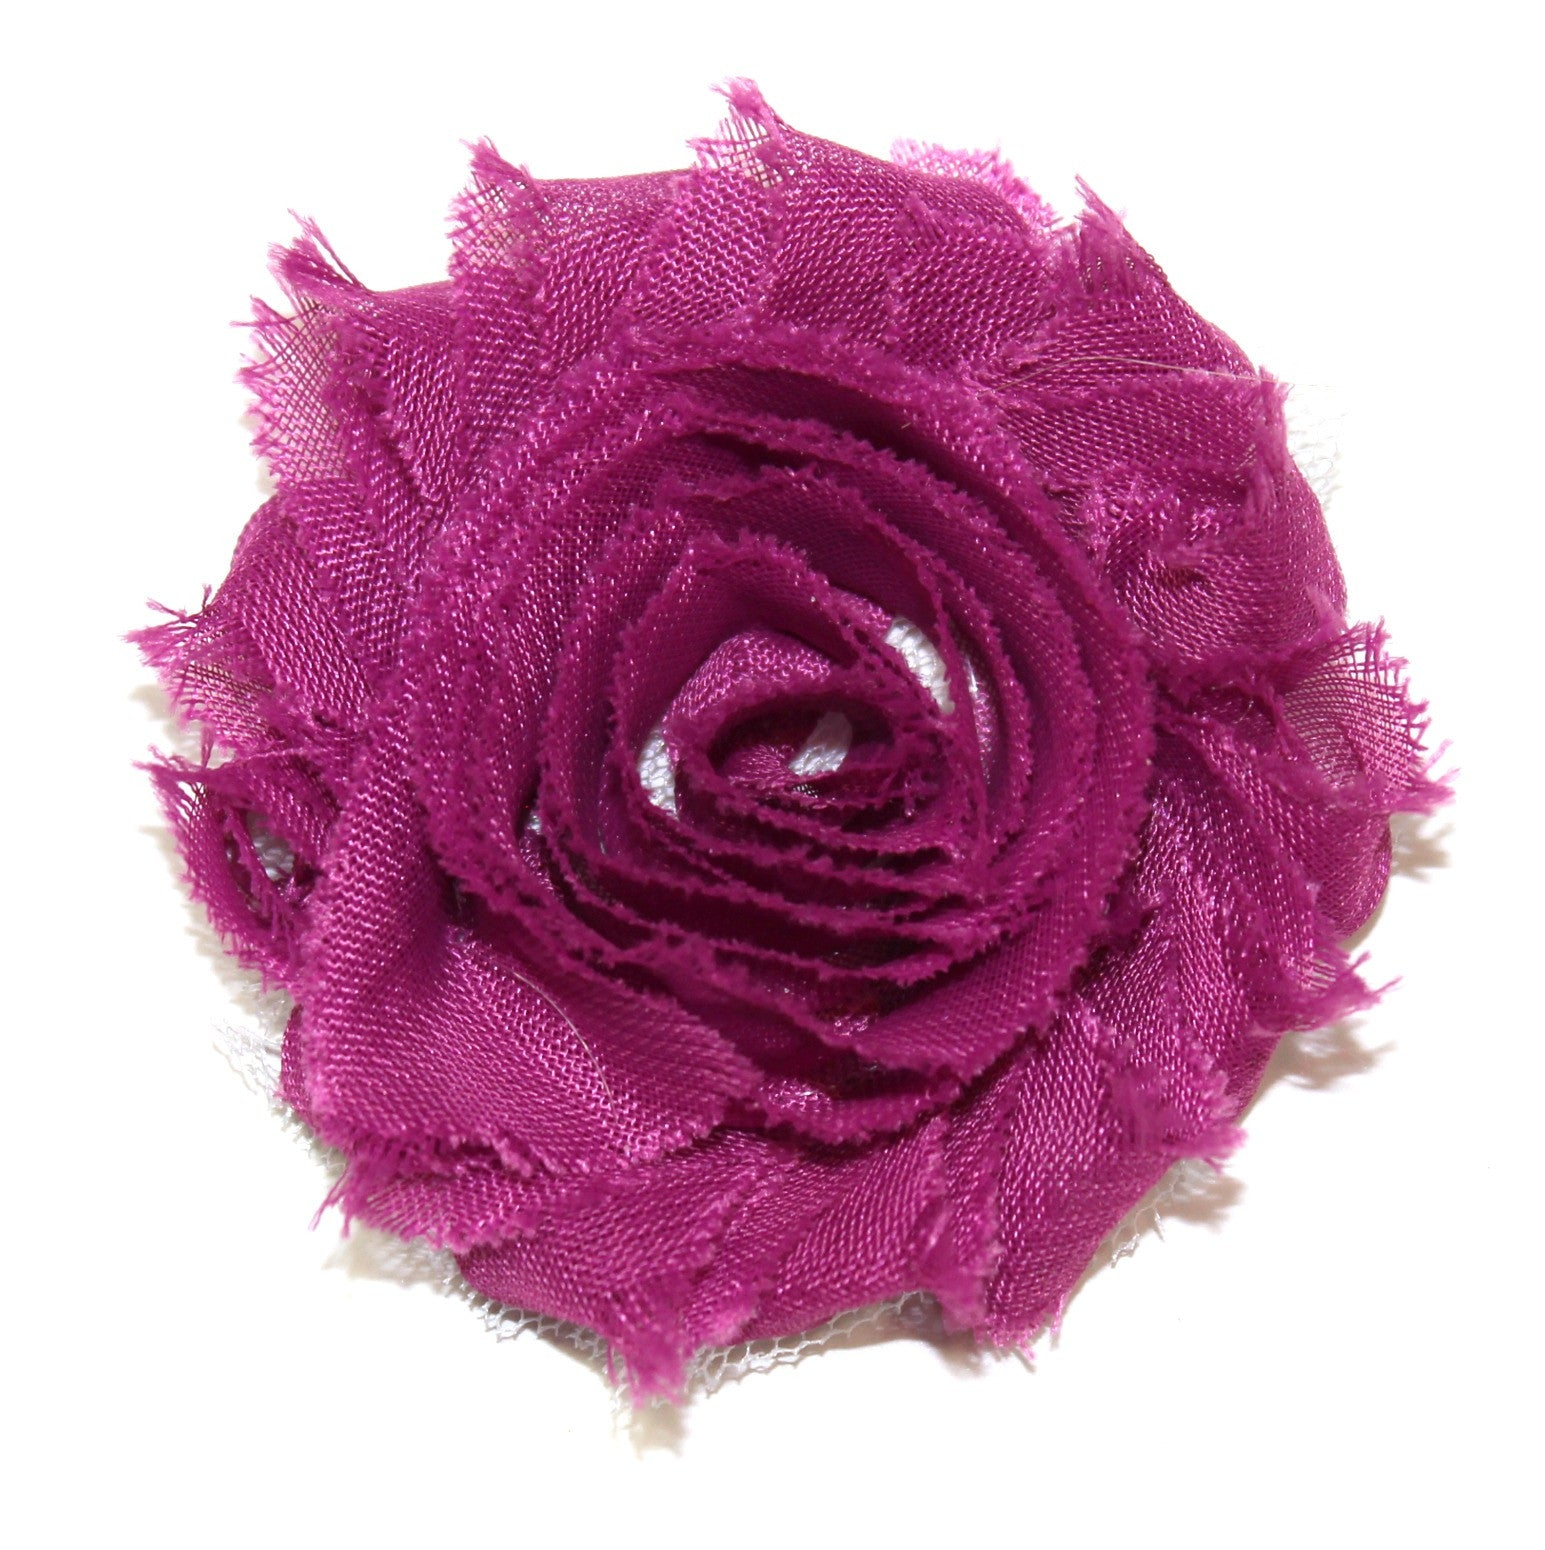 Shabby Flower - Mulberry - shabbyflowers.com